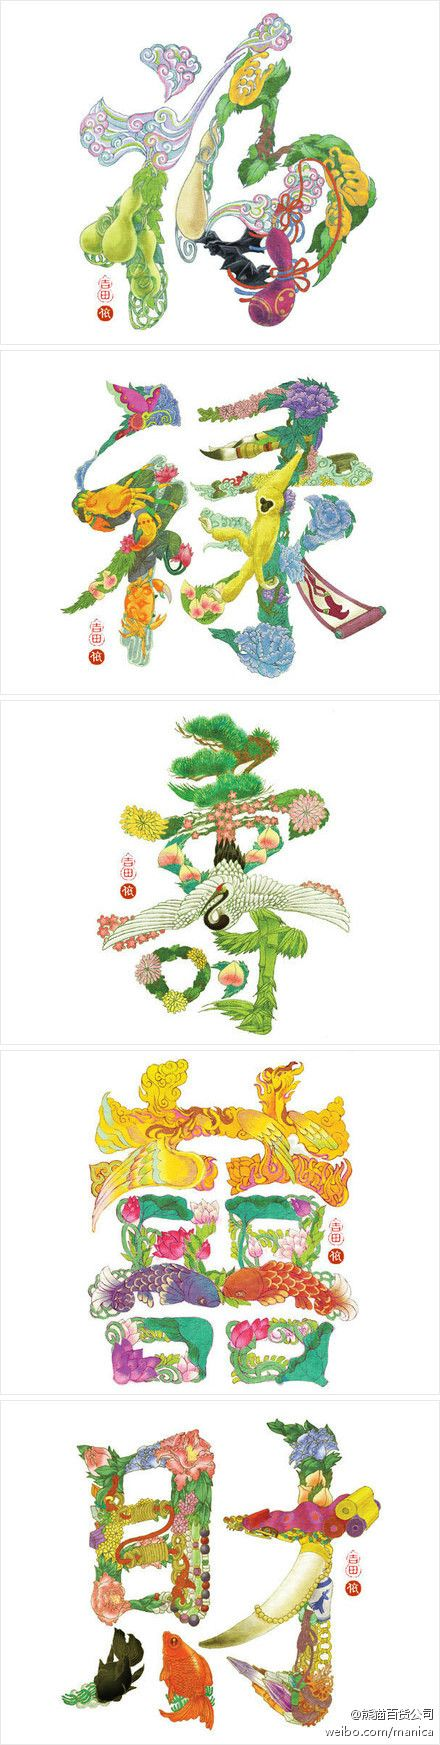 Chinese good fortune characters: luck, wealth, health/longevity, double luck & money.